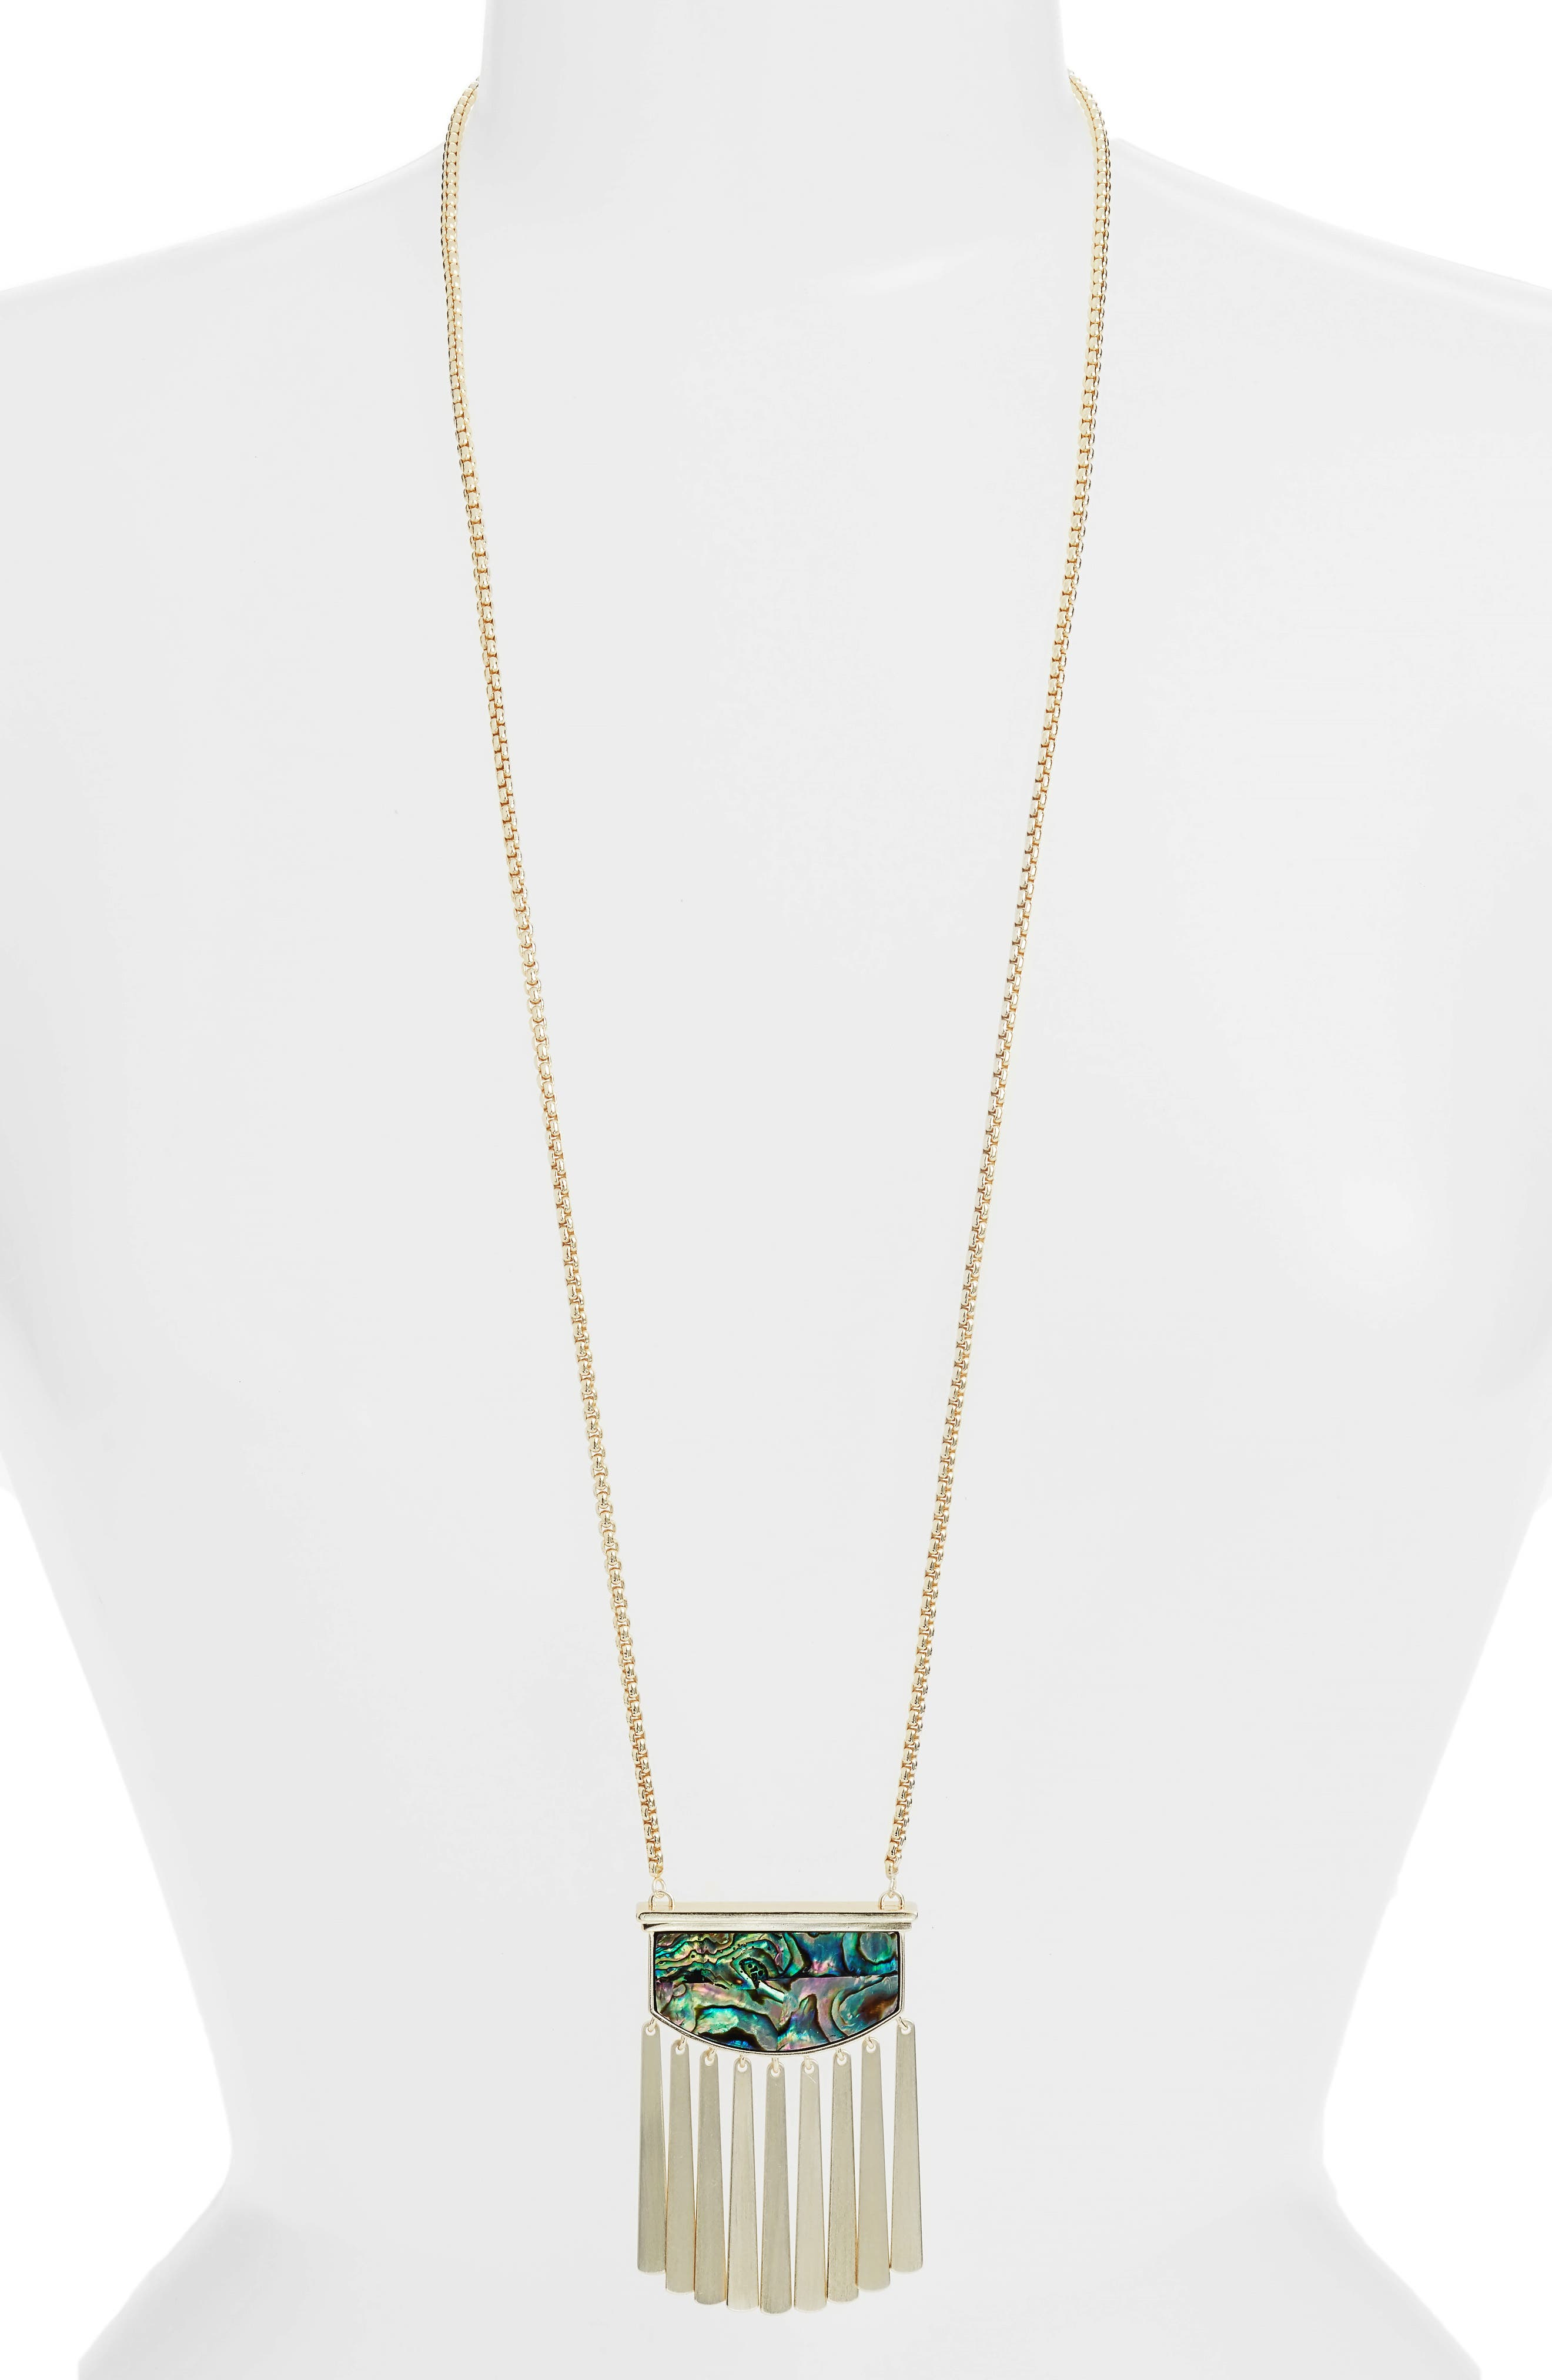 Ellen Stone Necklace,                             Main thumbnail 1, color,                             Abalone Shell/ Gold